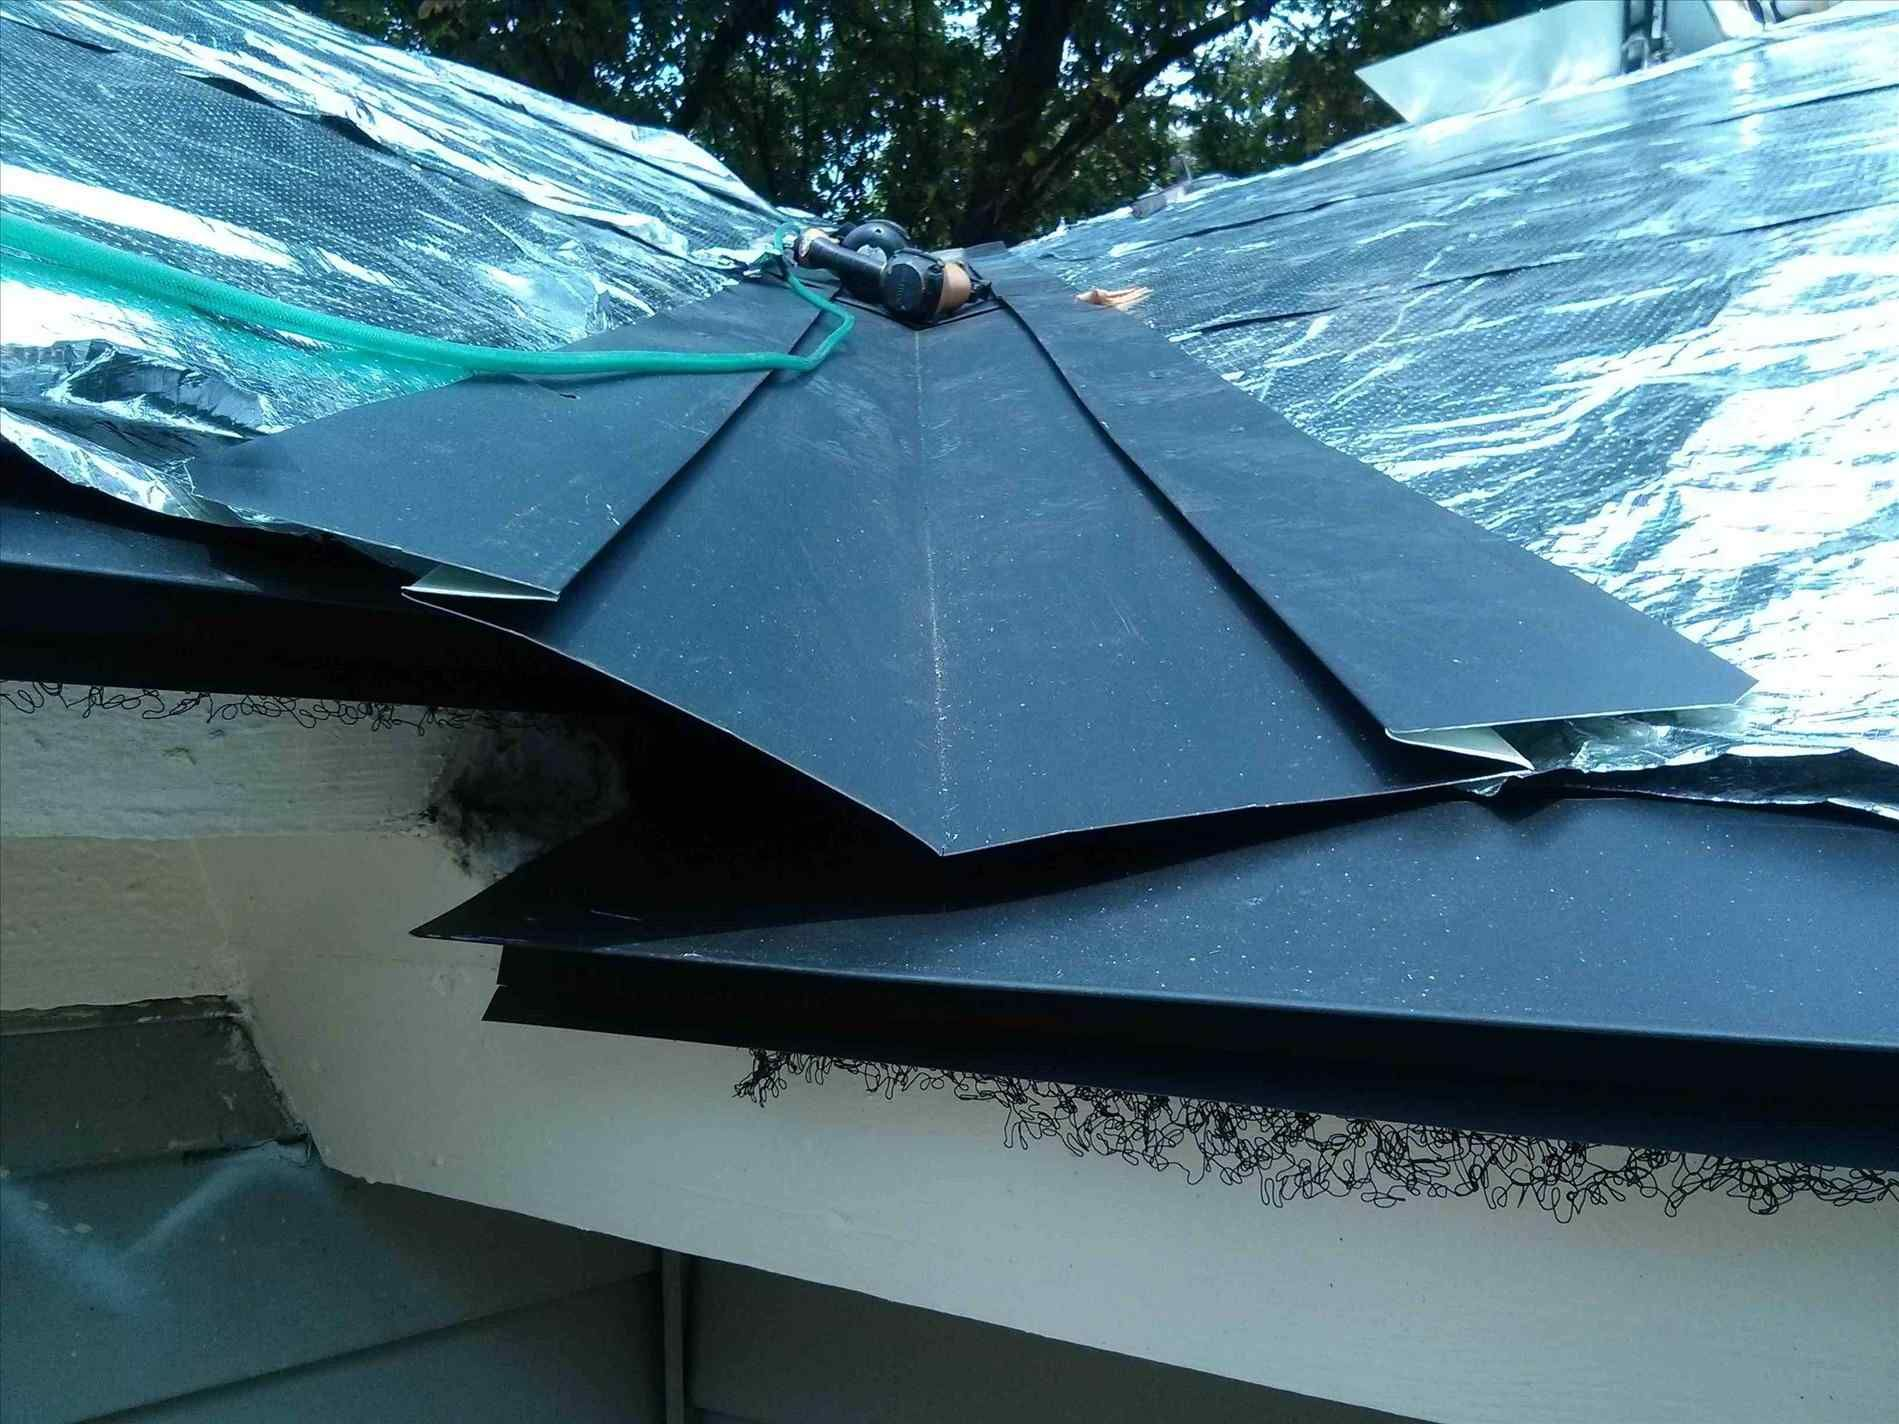 Leaking Metal Roof Repair Metal roof repair, Metal roof